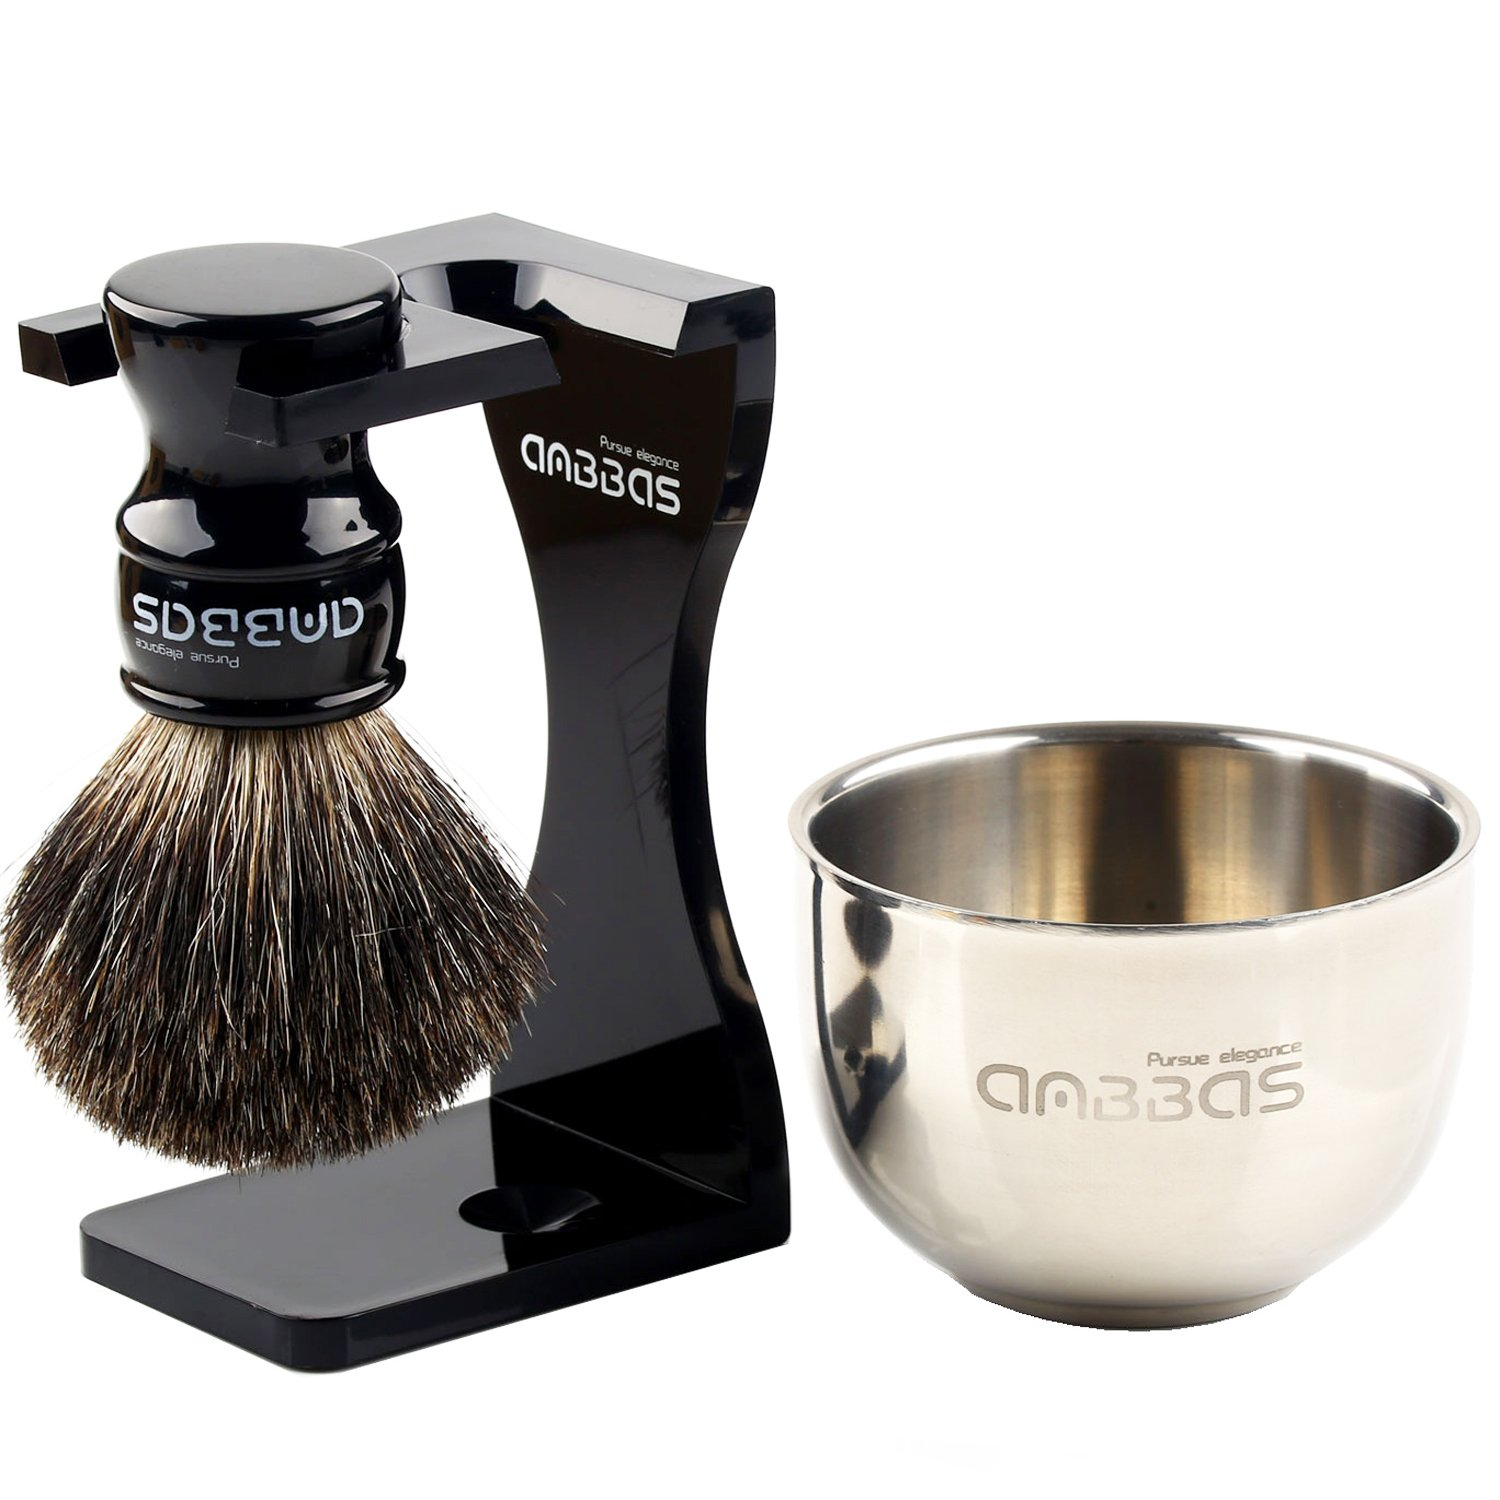 4in1 Shaving Set, Black Pure Badger Hair Shaving Brush with Resin Handle Medium Size and Black Acrylic Broken-resistant Shaving Stand,Stainless Steel Shaving Bowl Dia 3.2